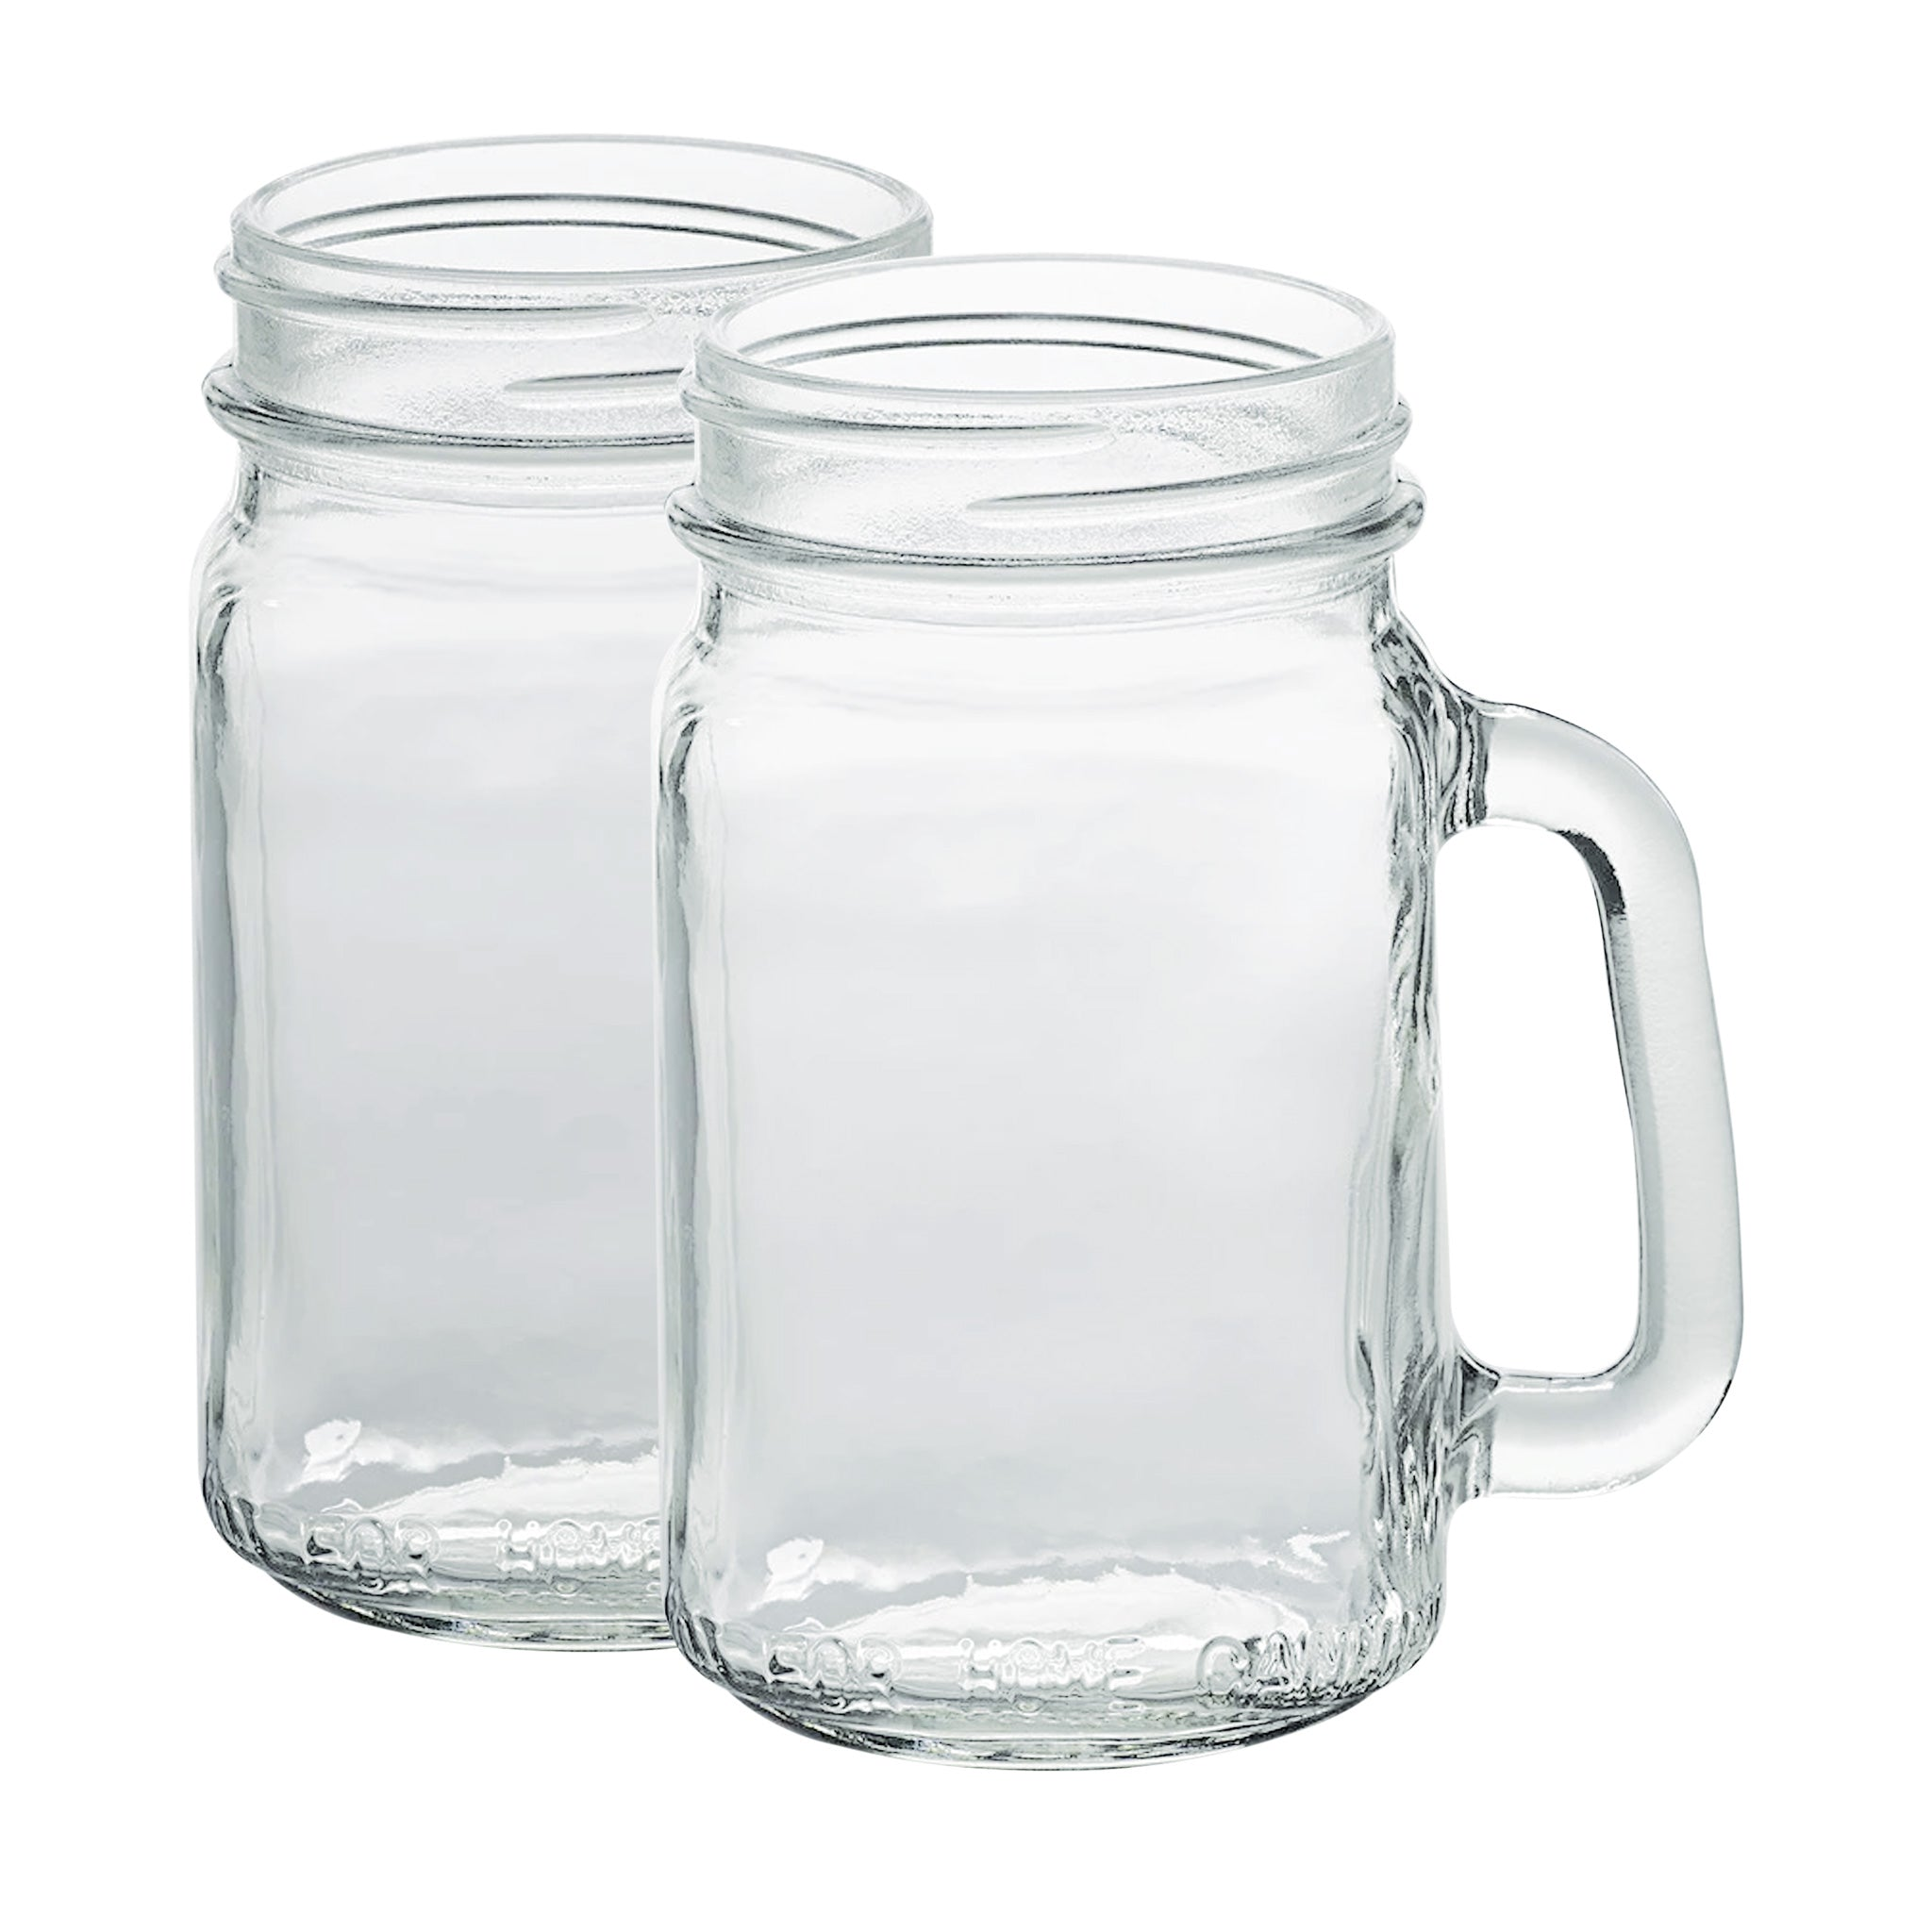 Glass Drinking Mugs, 2-Pack (16 oz)